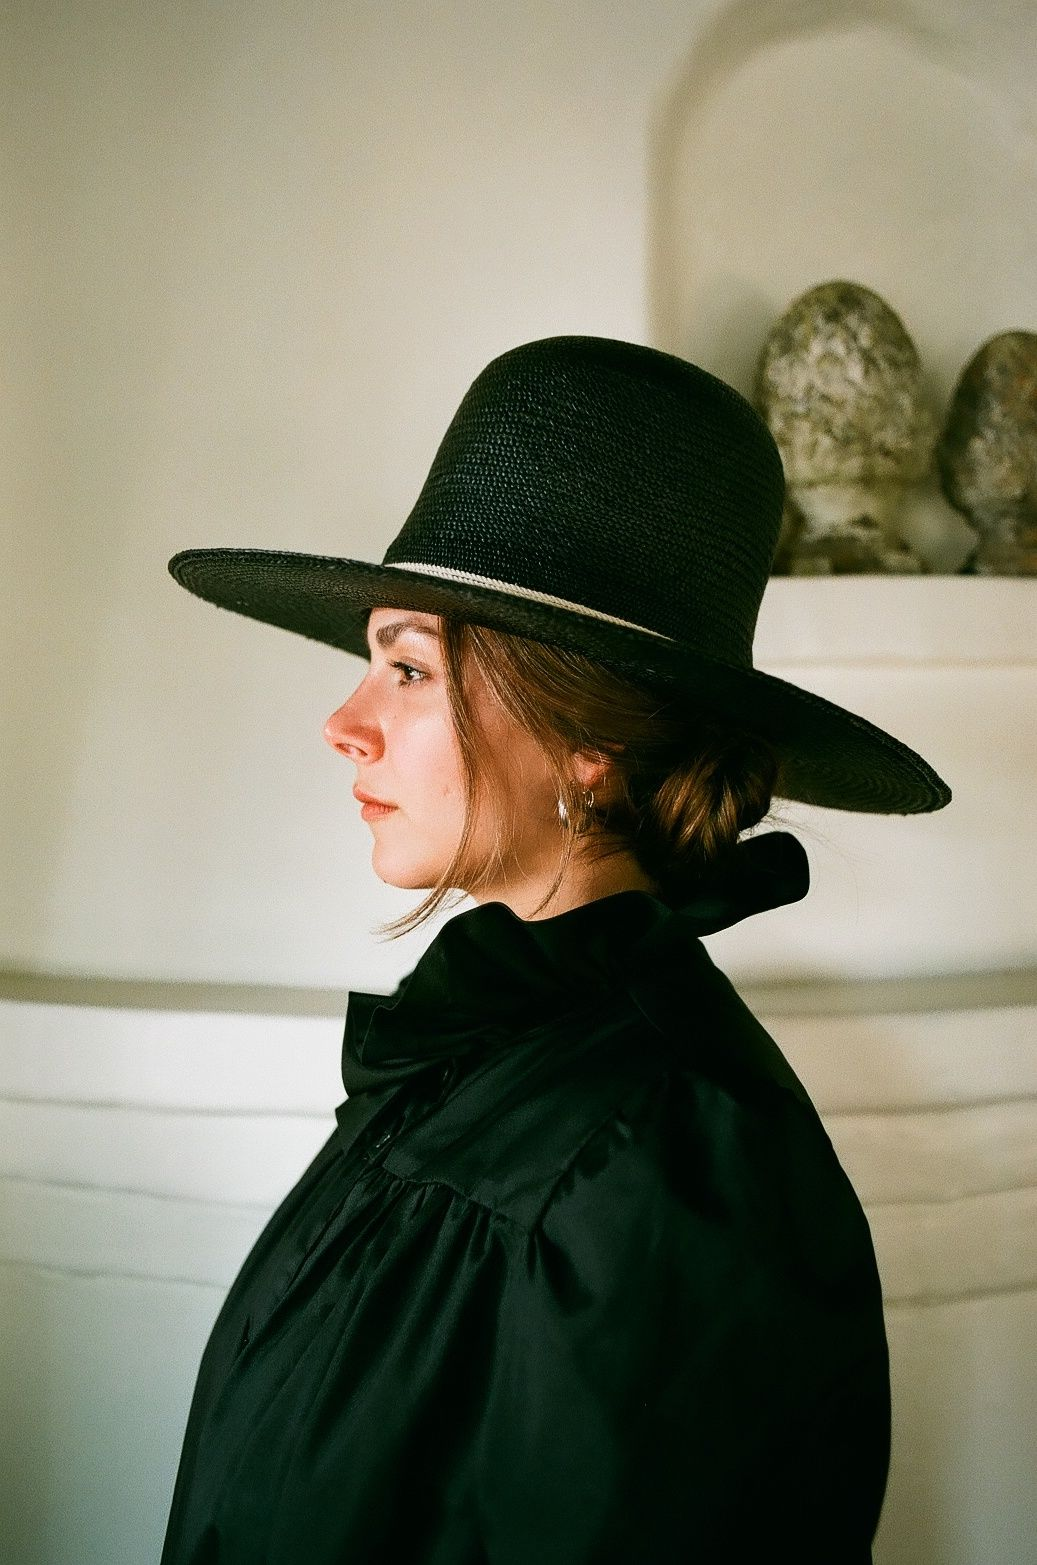 Fashion Girls Love This Hat In Japan The Ilaria Noir From De La Fuente Fashion Girl Fashion Hand Embroidered